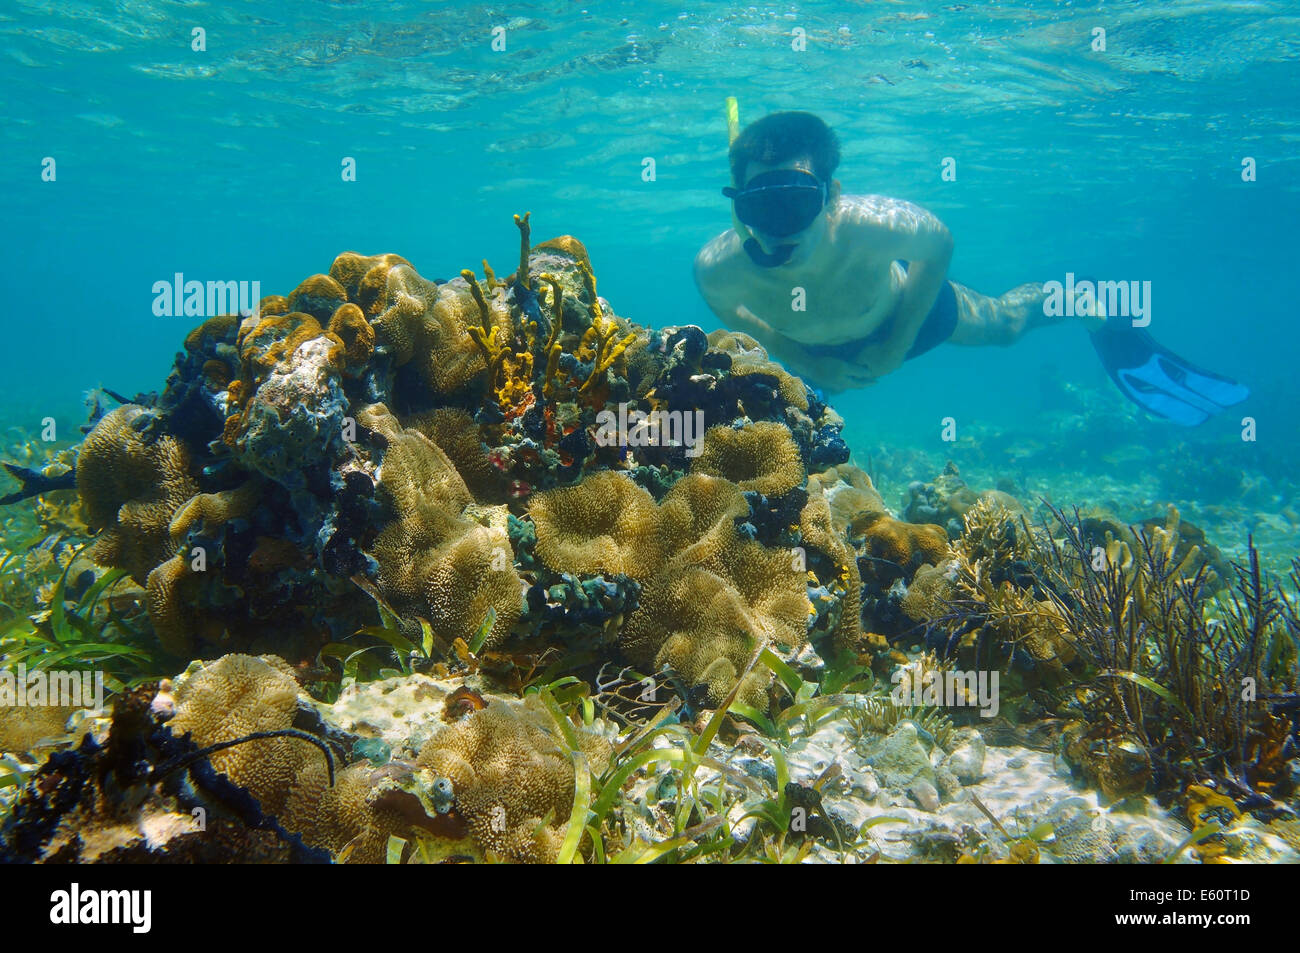 man underwater snorkeling in shallow water and looks tropical sea life - Stock Image